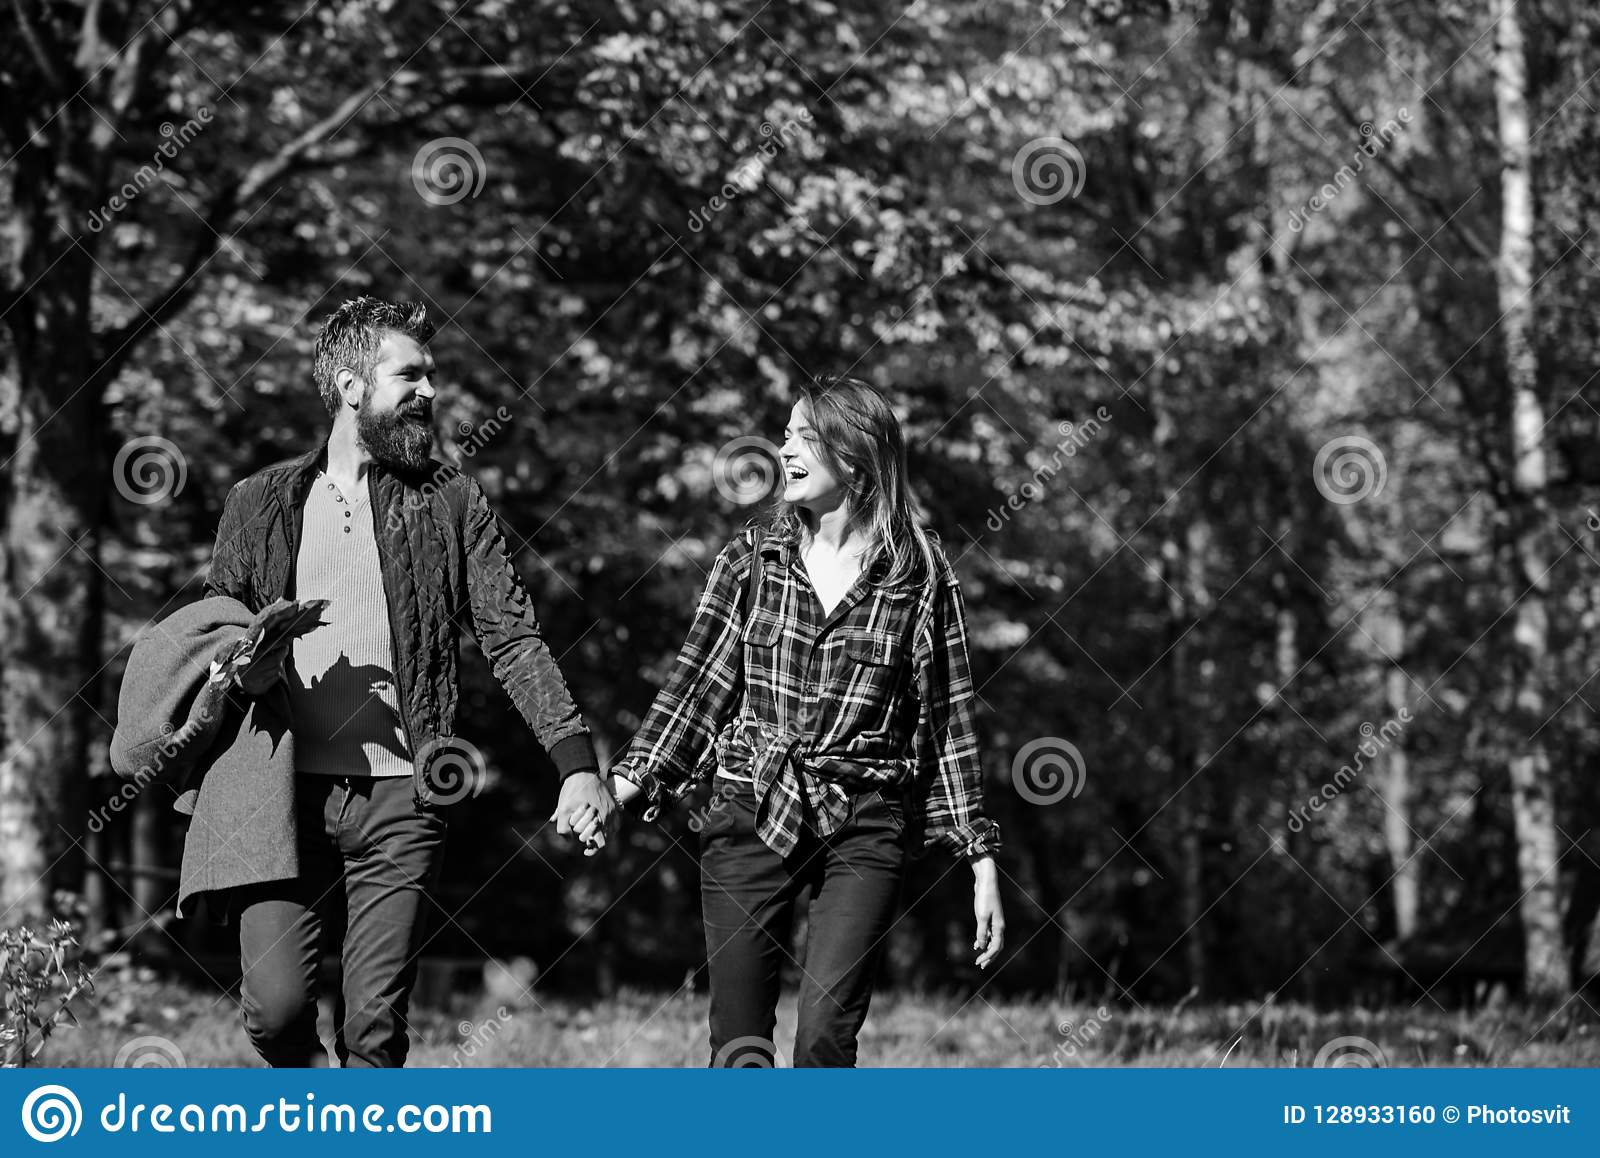 Couple in love walks in autumn park. Relationship and fall